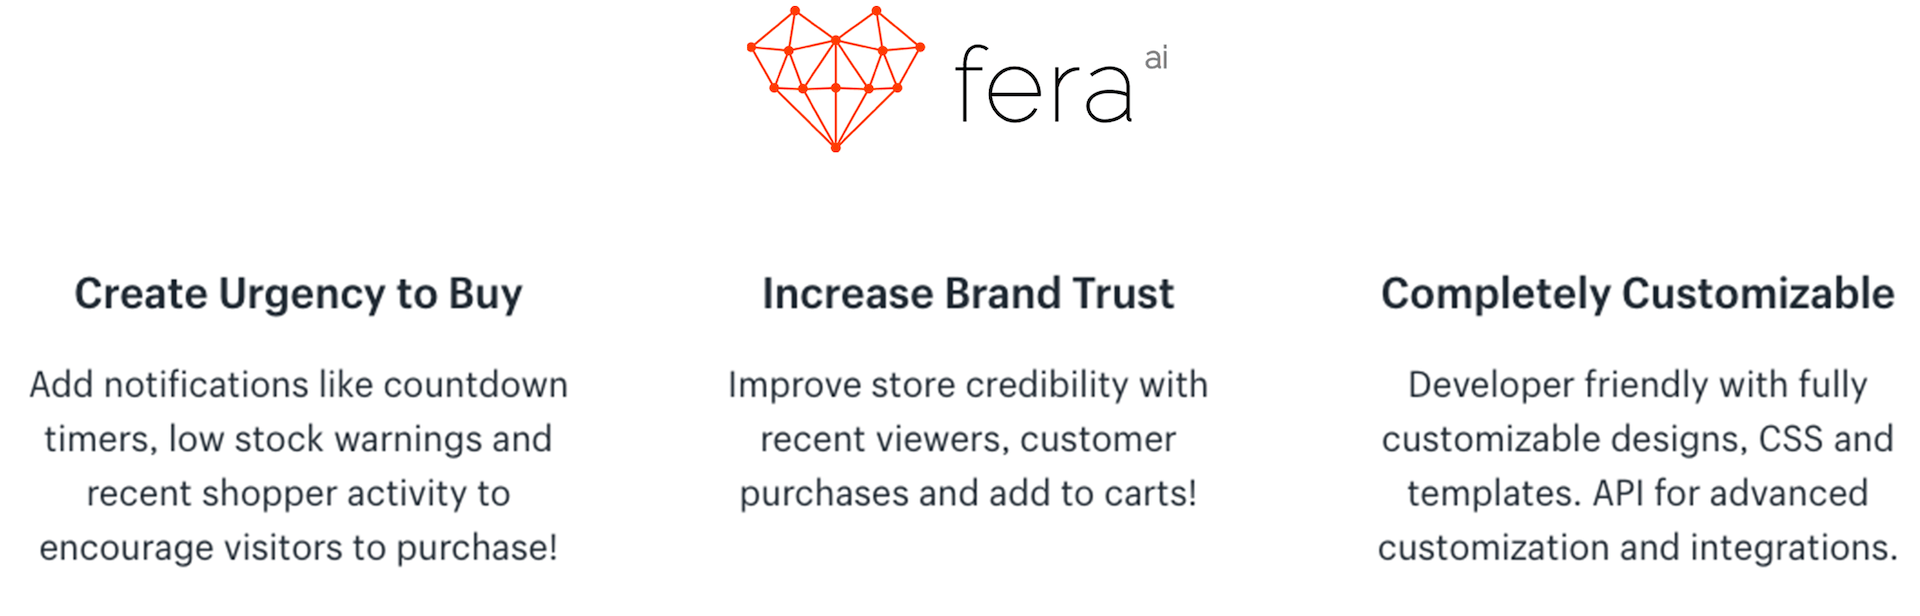 fera - social proof and timers